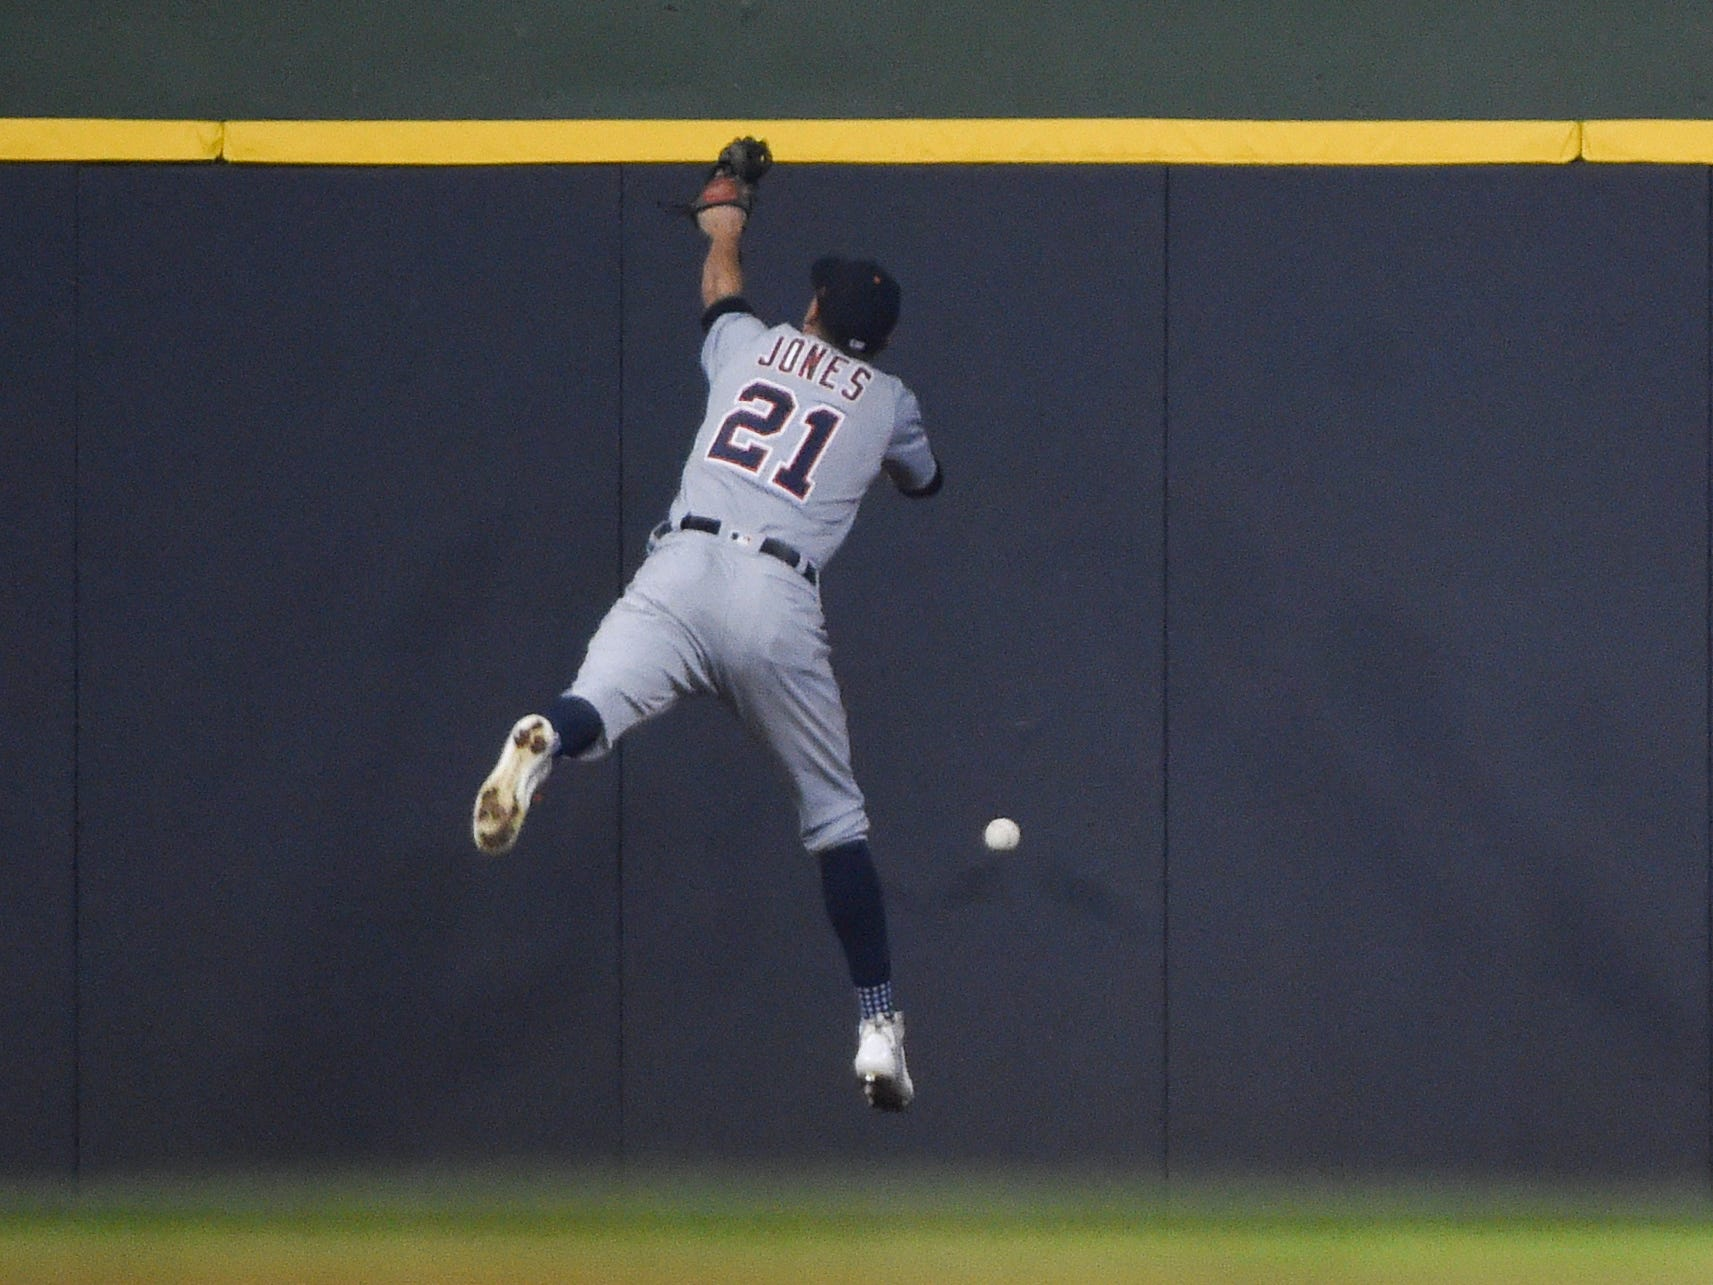 Detroit Tigers center fielder JaCoby Jones cannot catch a ball hit against the Milwaukee Brewers in the seventh inning at Miller Park on Sept. 30, 2018.